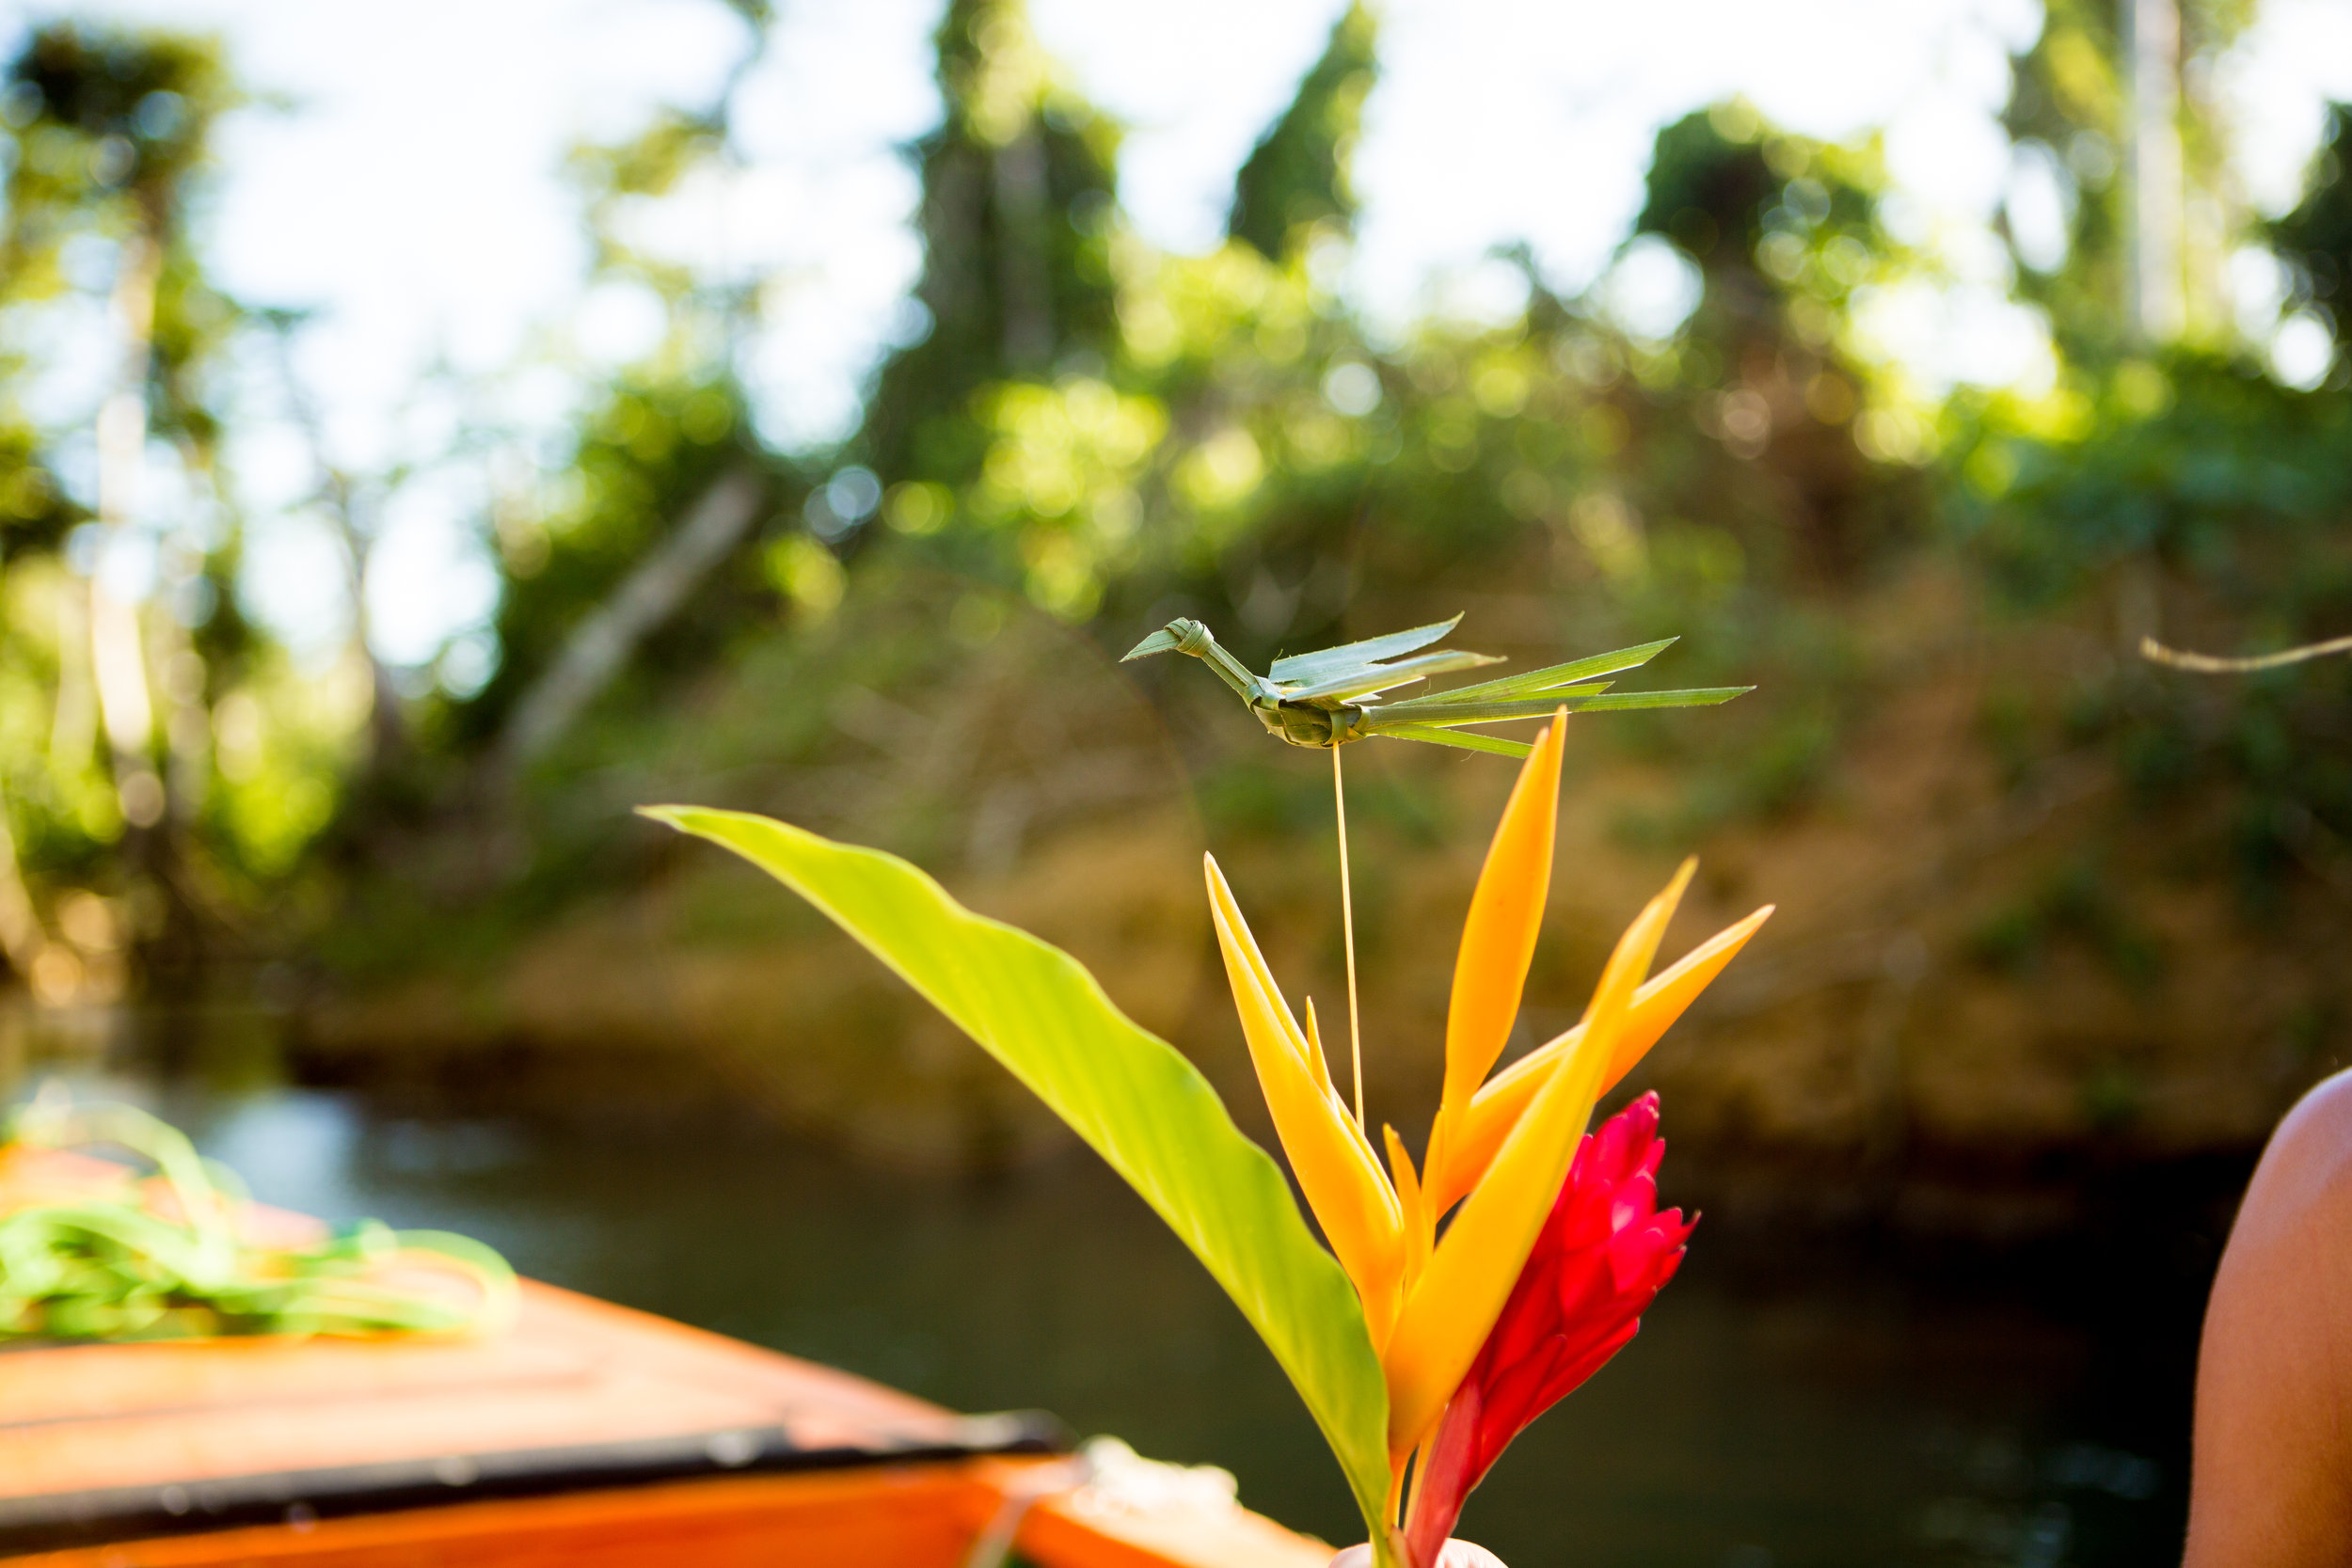 Dominica's Indian River Tour was a total unanticipated highlight of the trip, and a must-see activity for your train ashore on Dominica!